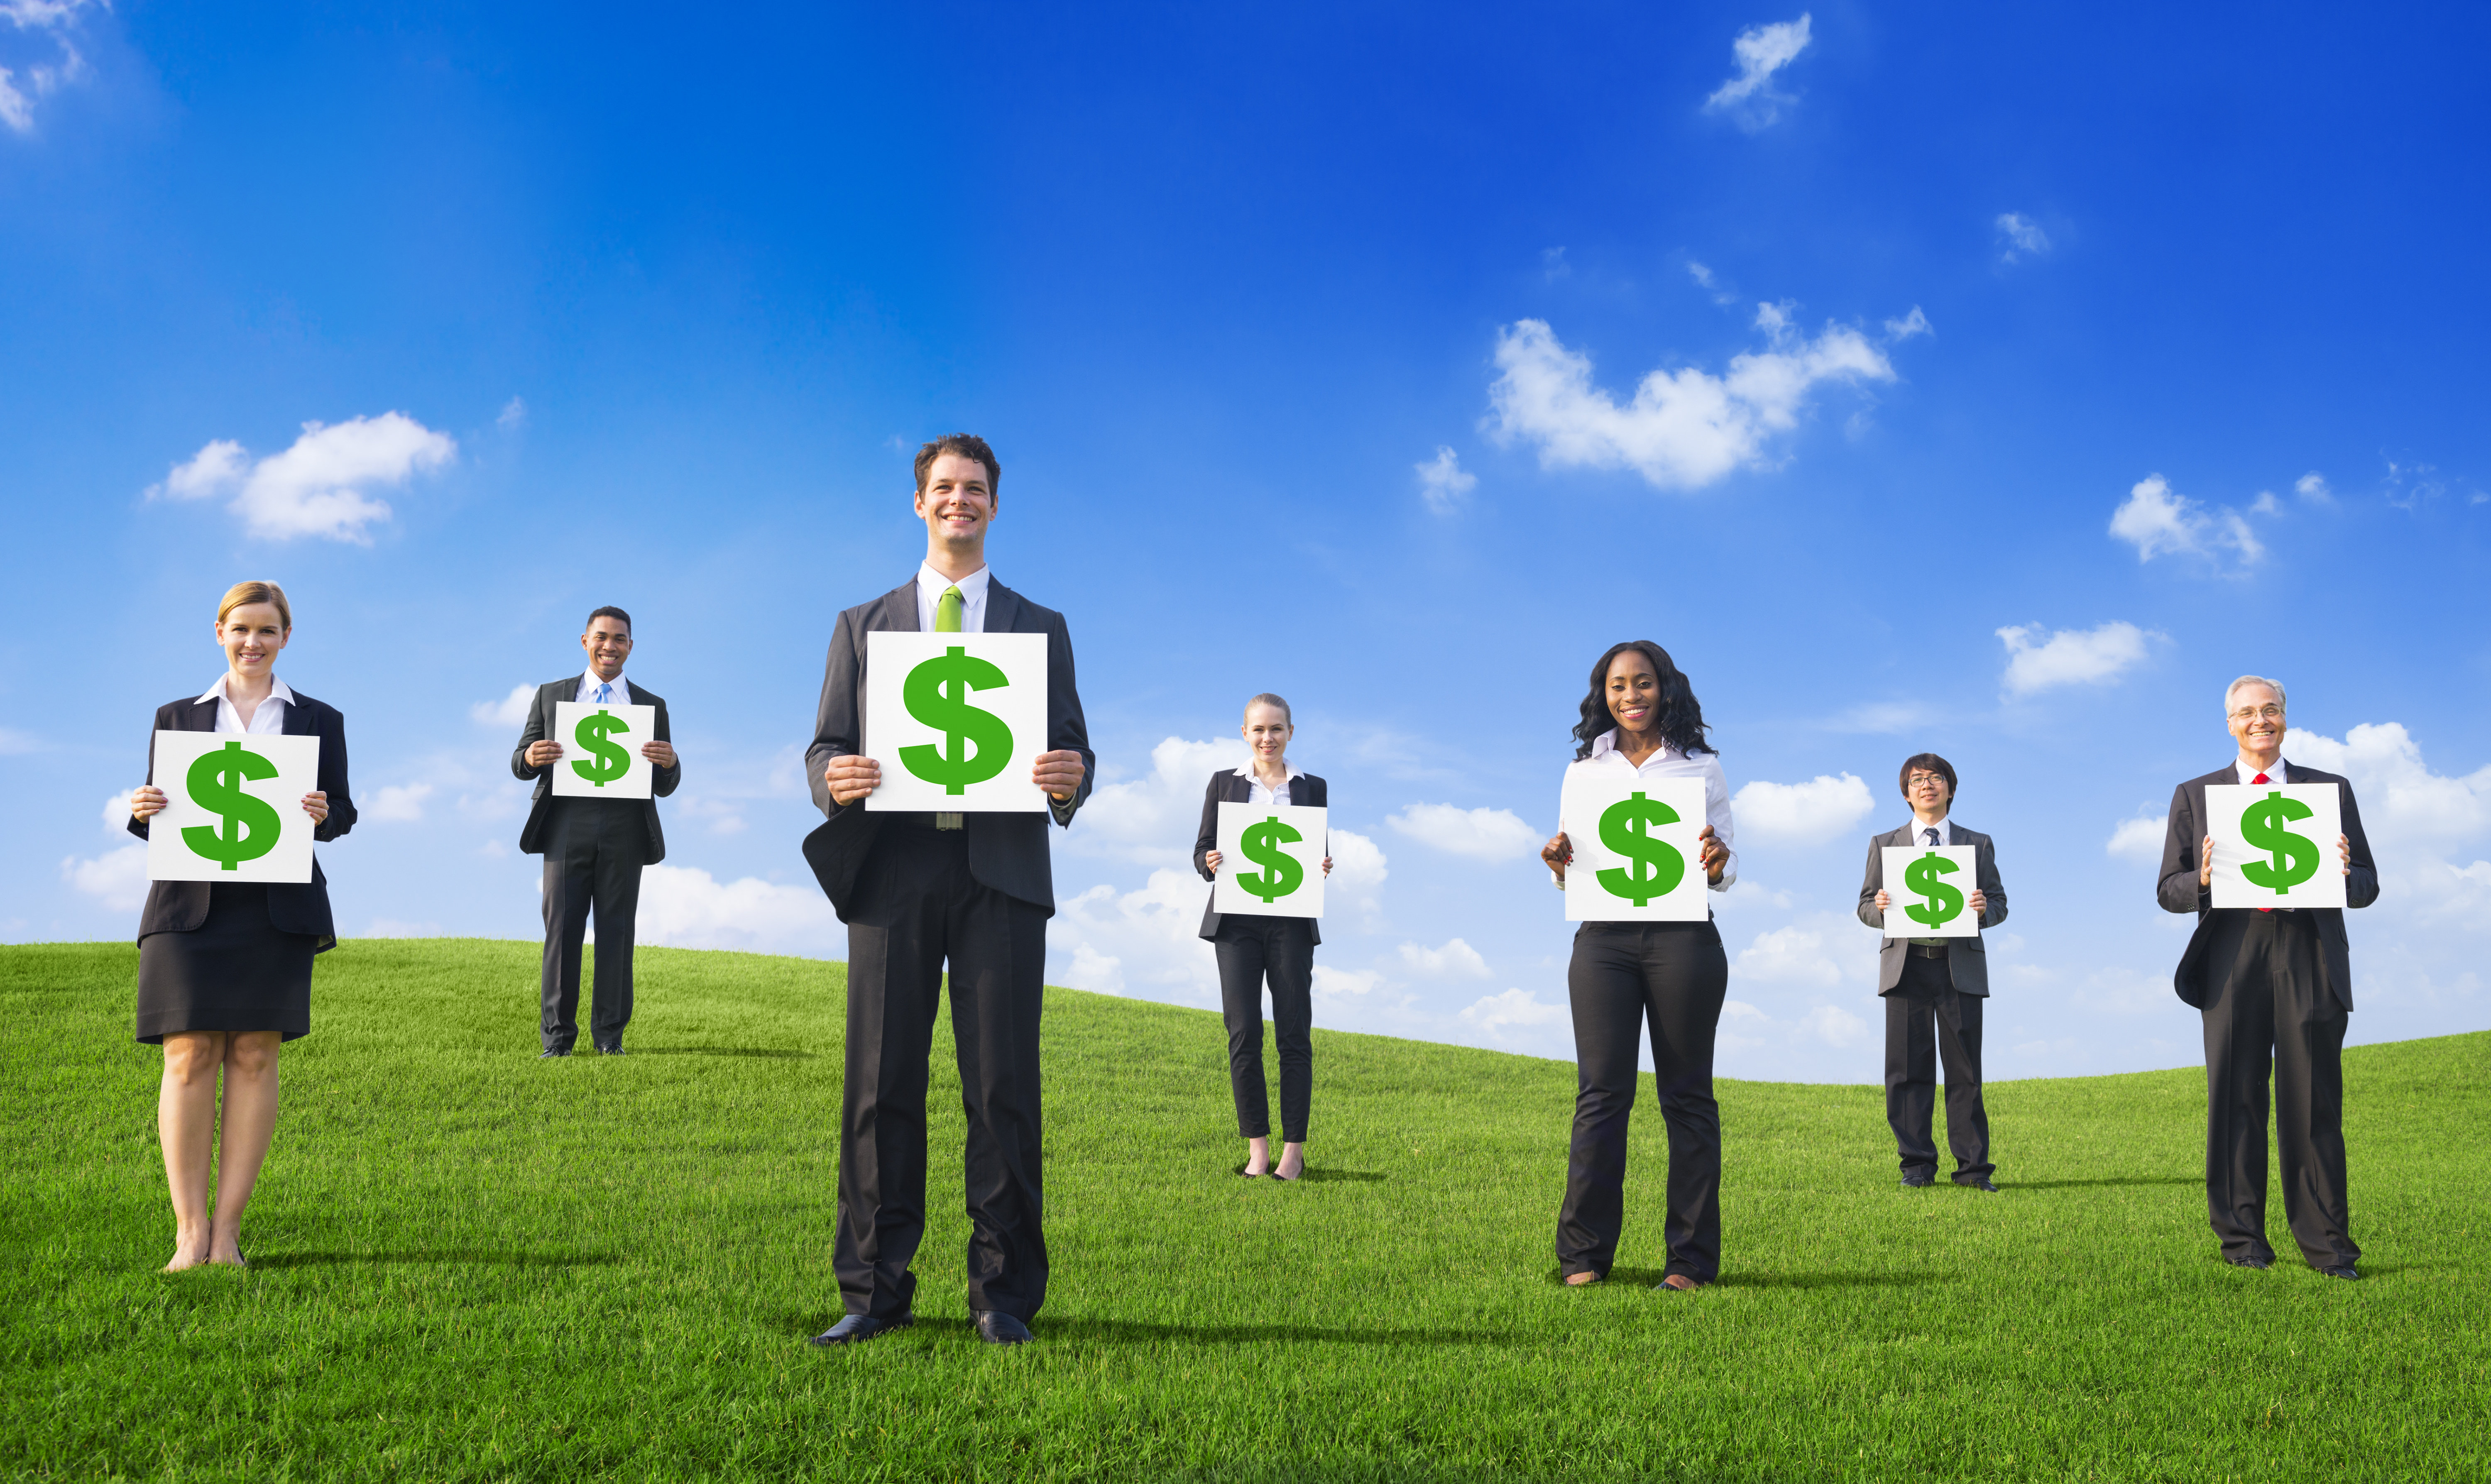 salary negotiations sue connelly s kit list blog group of business people green business